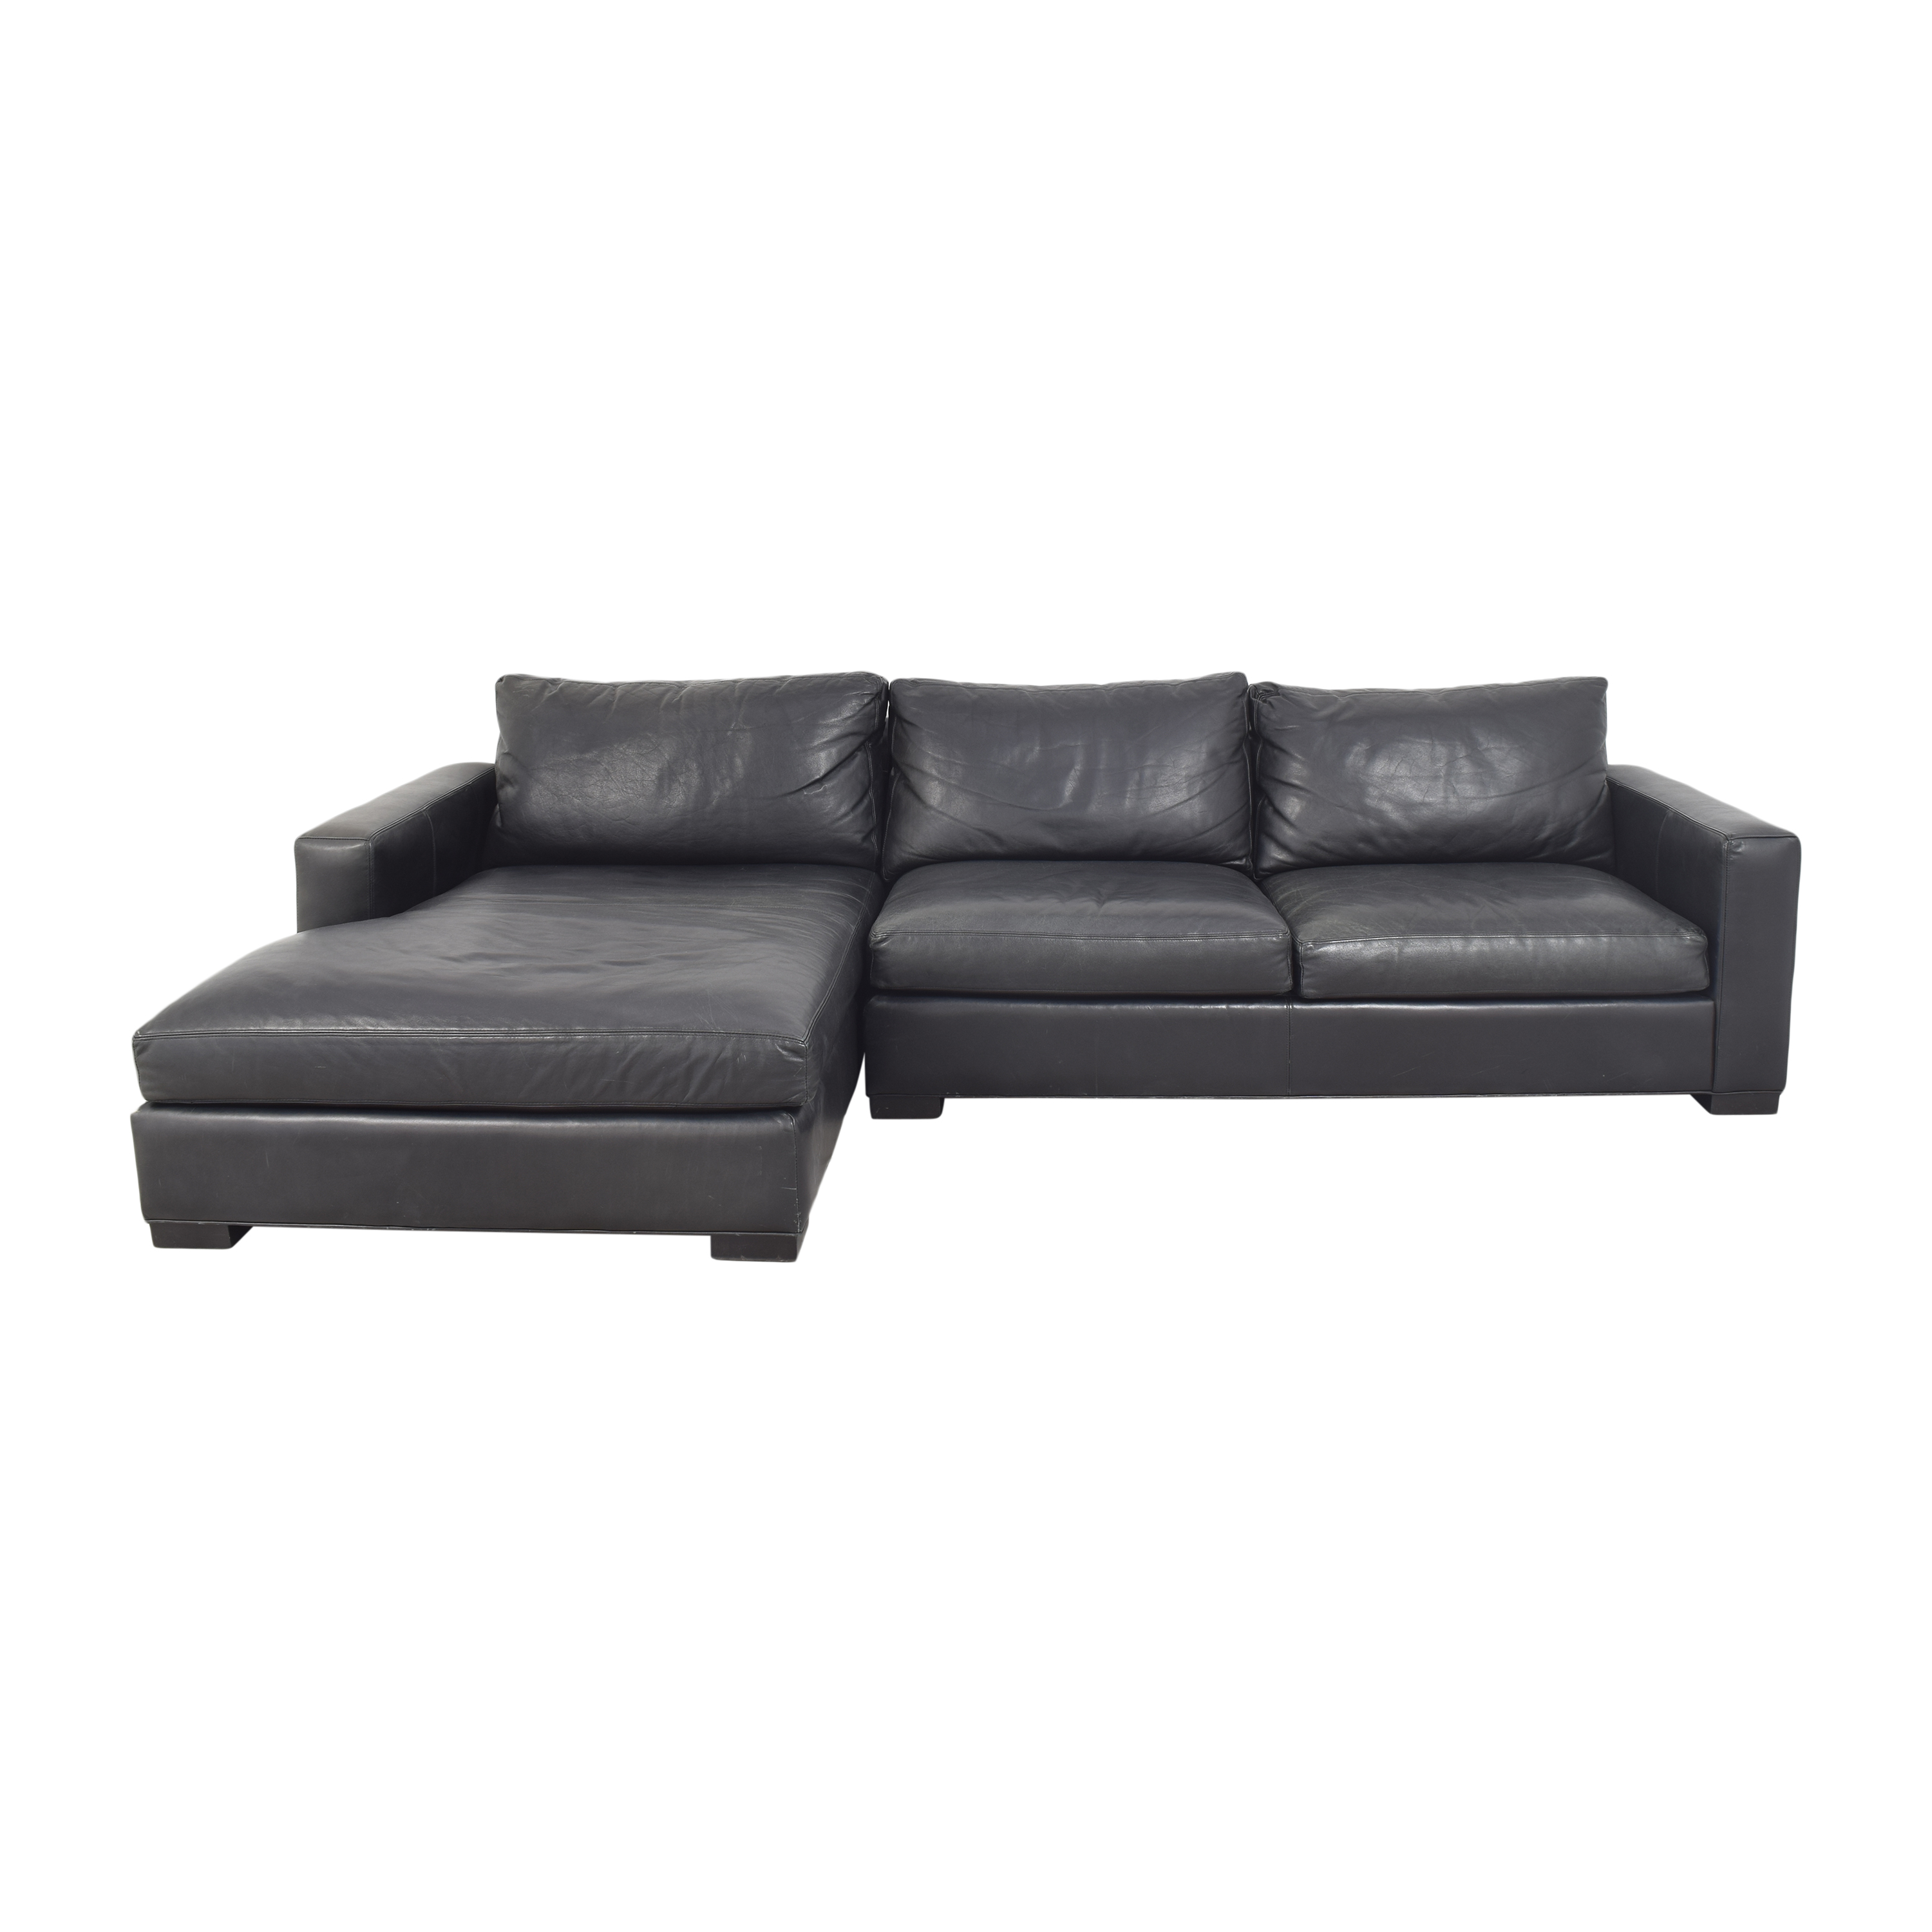 Room & Board Room & Board Metro Chaise Sectional Sofa for sale